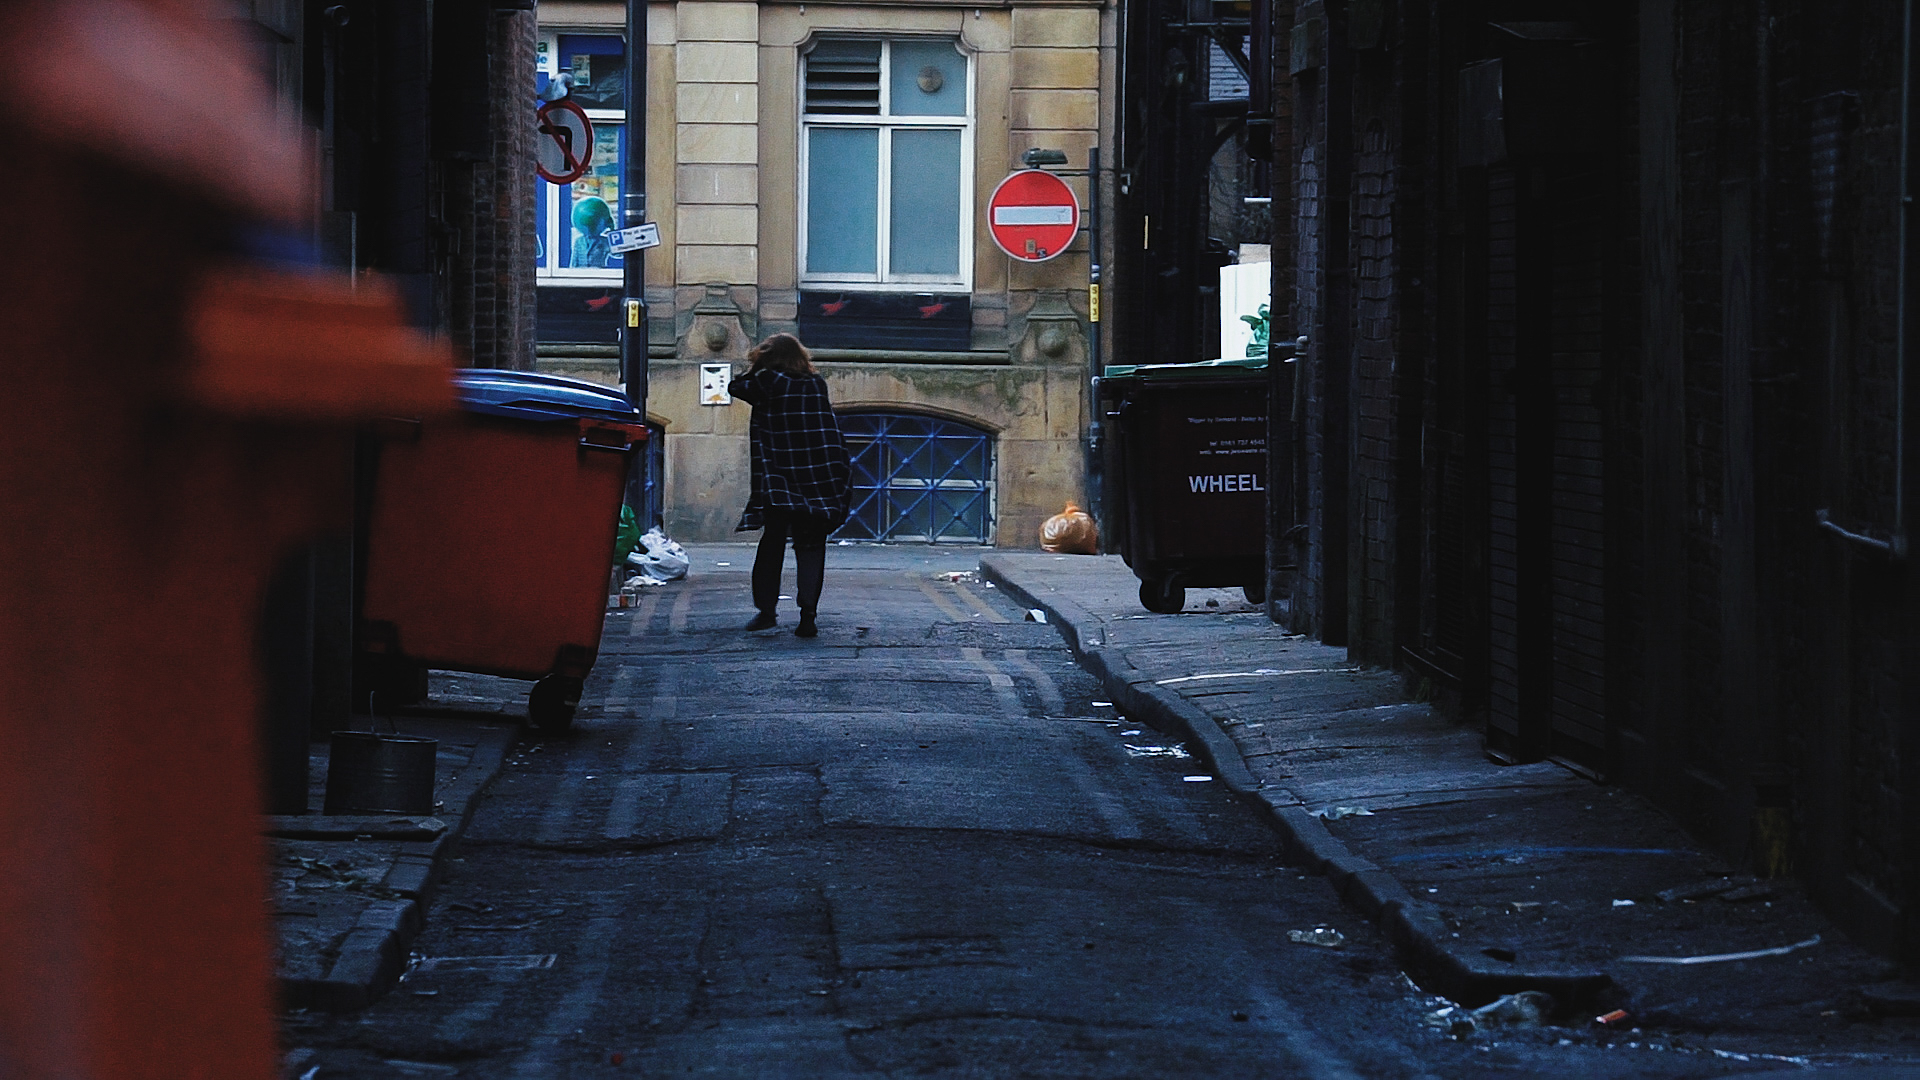 Homeless man on spice wandering a Manchester alley